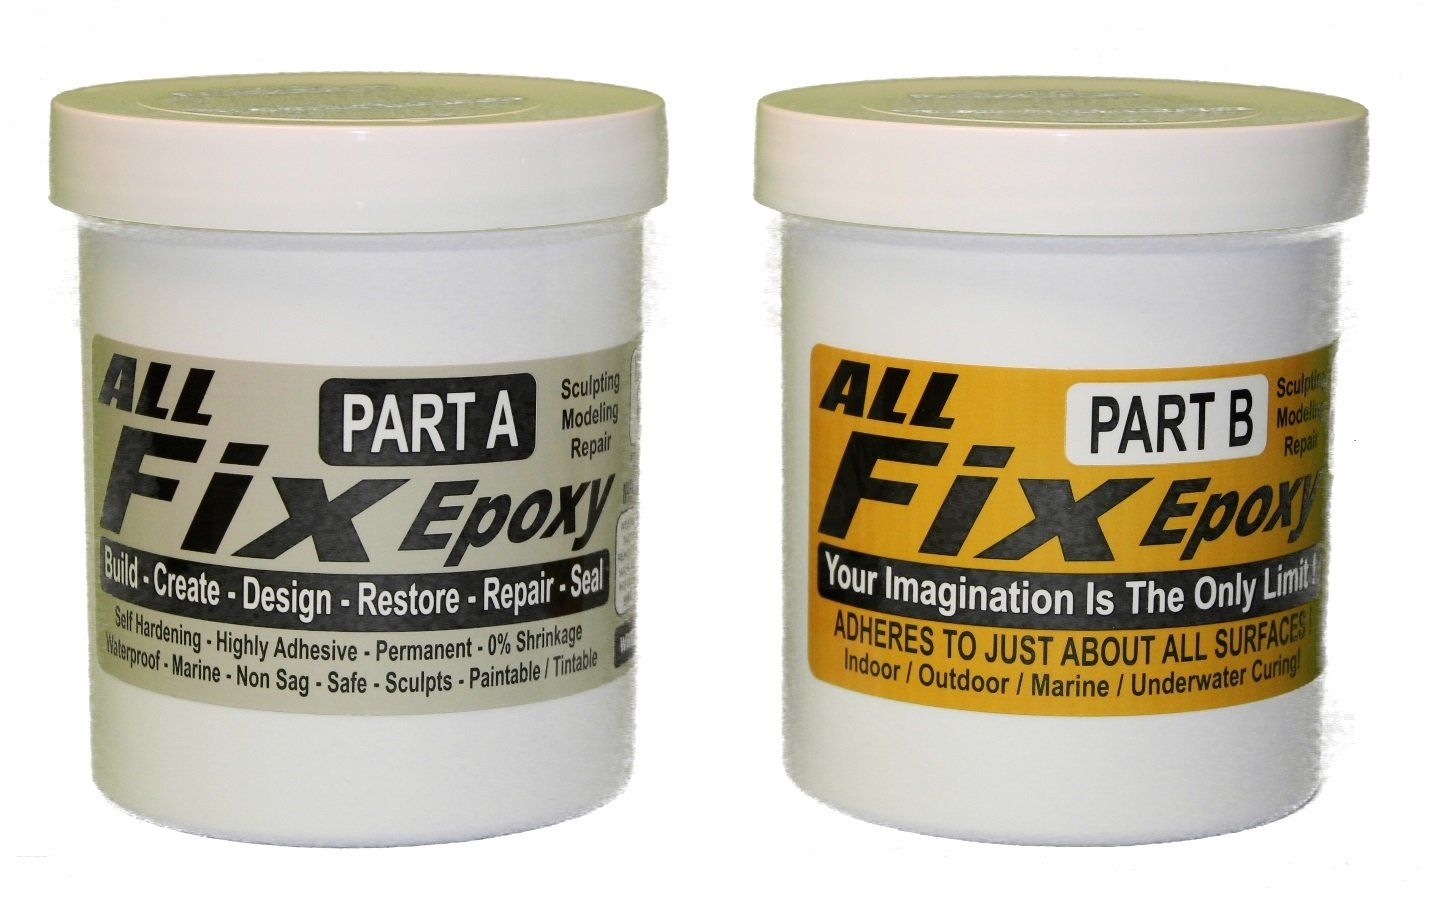 All-Fix Epoxy Putty 3 Pound Unit - 2 Pint Set - Underwater Epoxy - All Fix By Cir-Cut Corporation - The All Purpose Epoxy Repair Material - Home - Jewelry Design - Arts & Crafts - 1001 Uses !